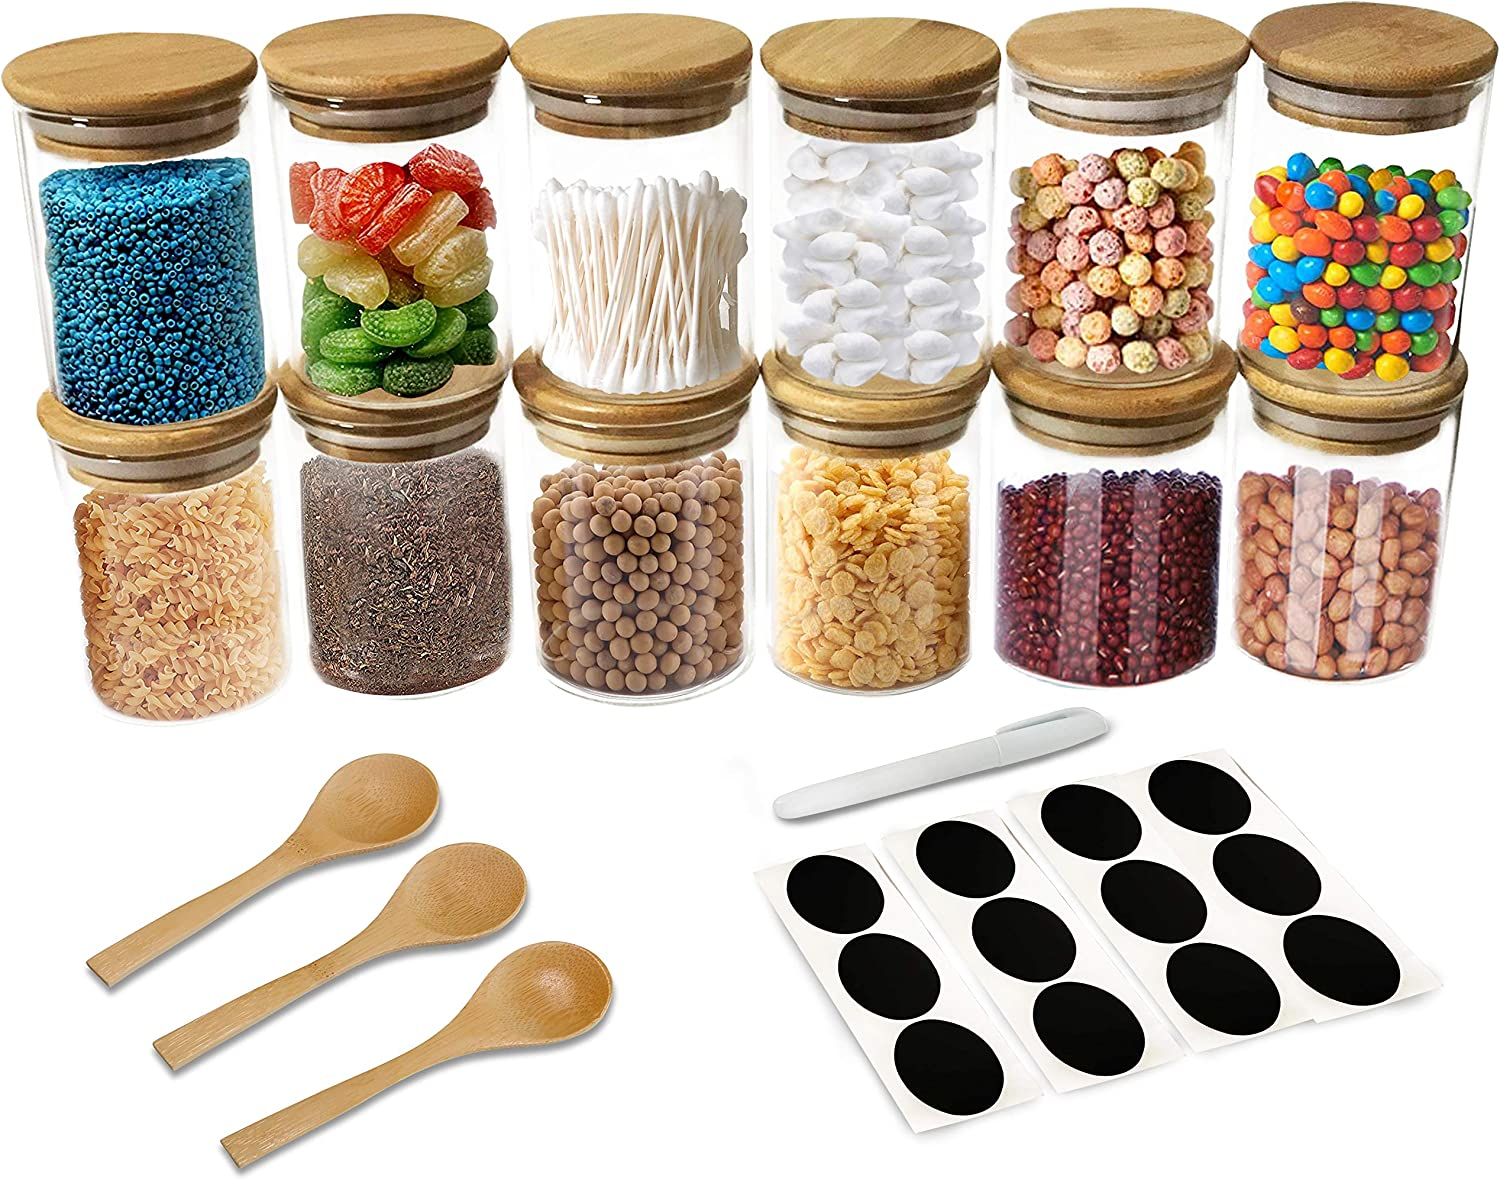 12 Piece Glass Jars with Natural Bamboo Lids with 3 Bamboo Spoons for Home Kitchen - Tea, Flour, Cookie, Candy & Spices - 8oz Small Food Storage Airtight Canister Sets for Kitchen Pantry Organization